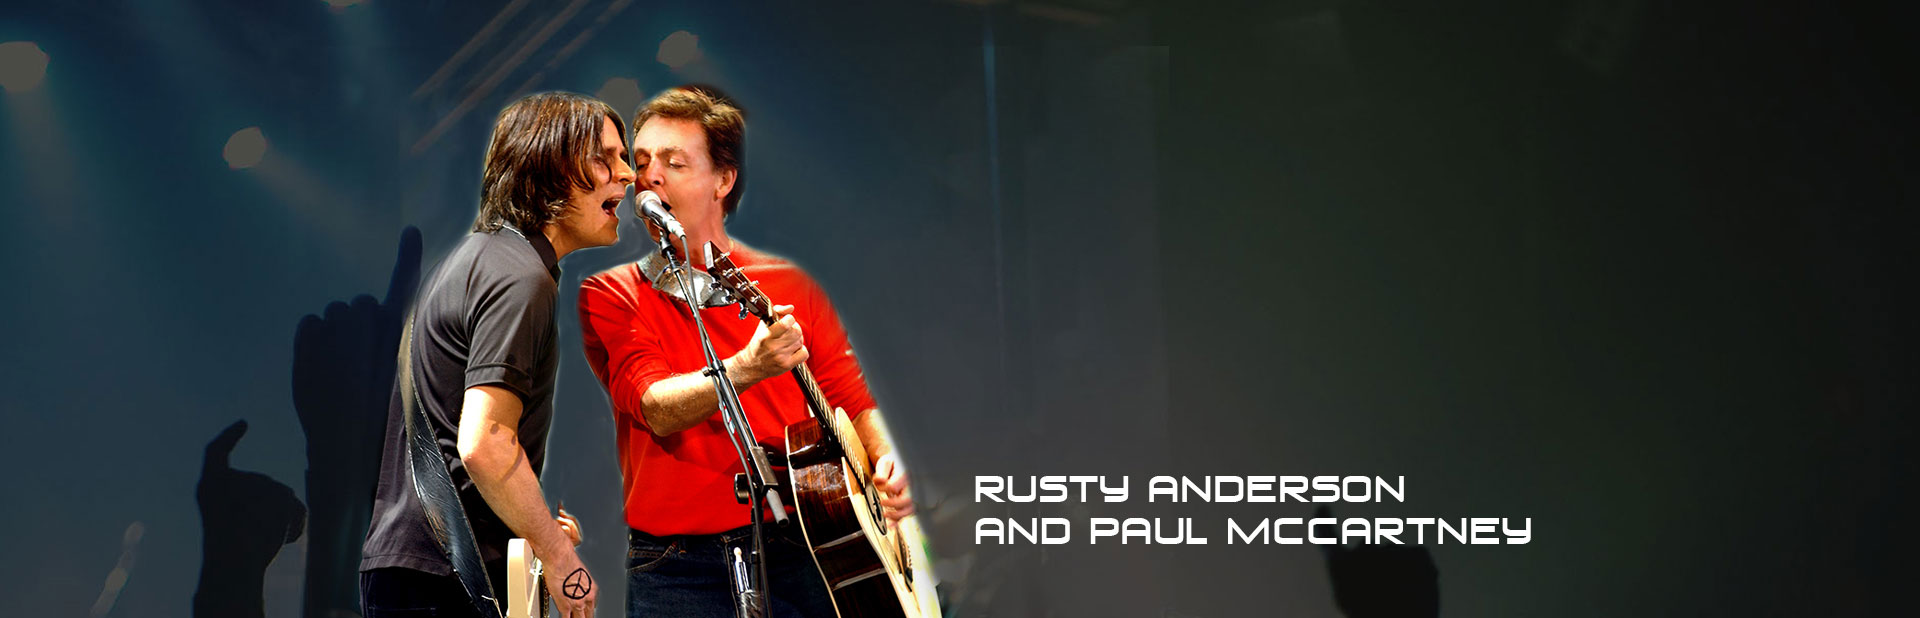 Rusty Anderson And Paul Mccartney